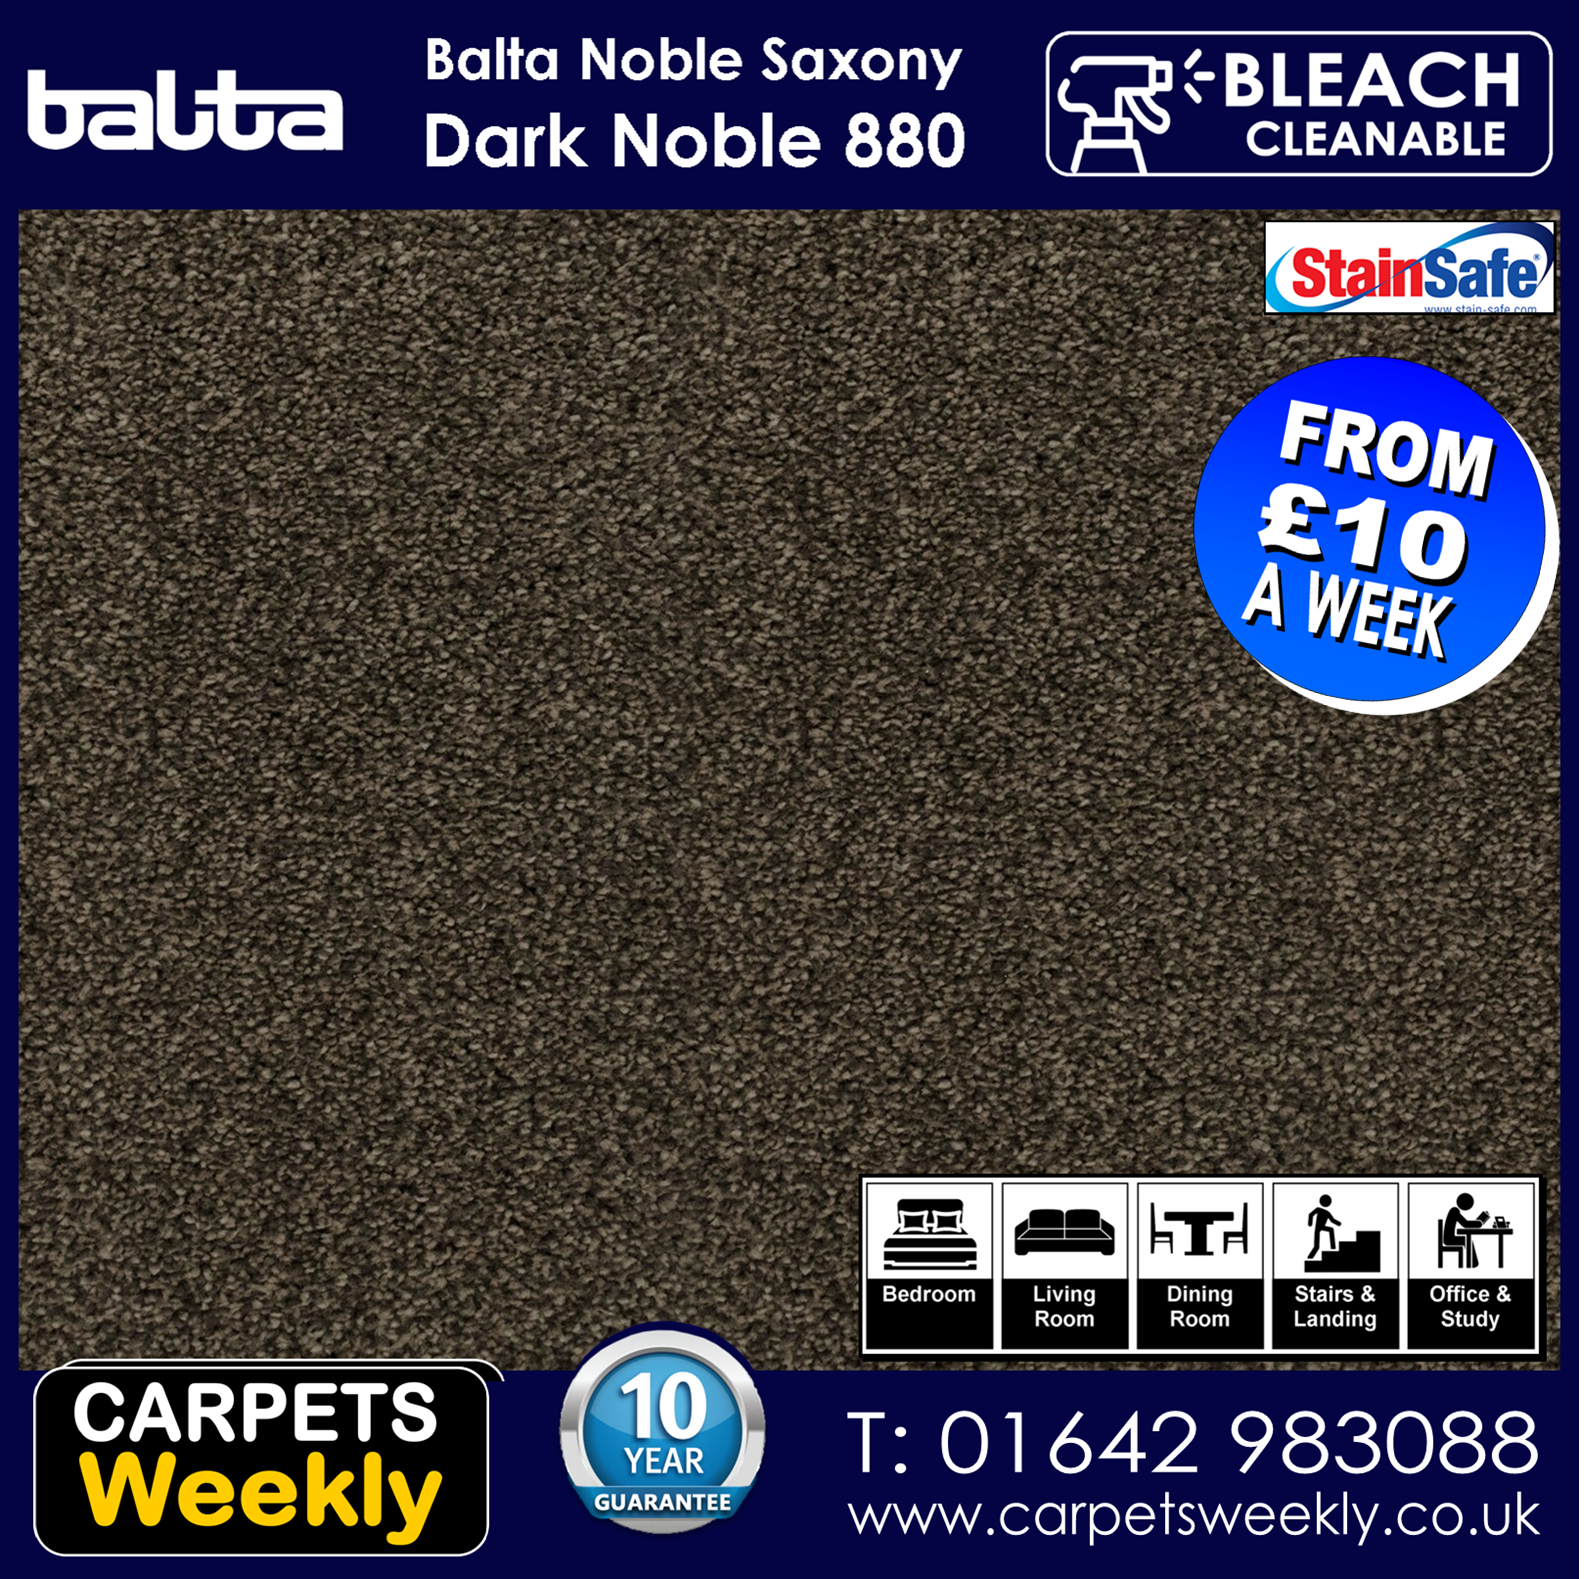 Noble Shepherd Saxony Carpet from Carpets Weekly. Dark Noble 880